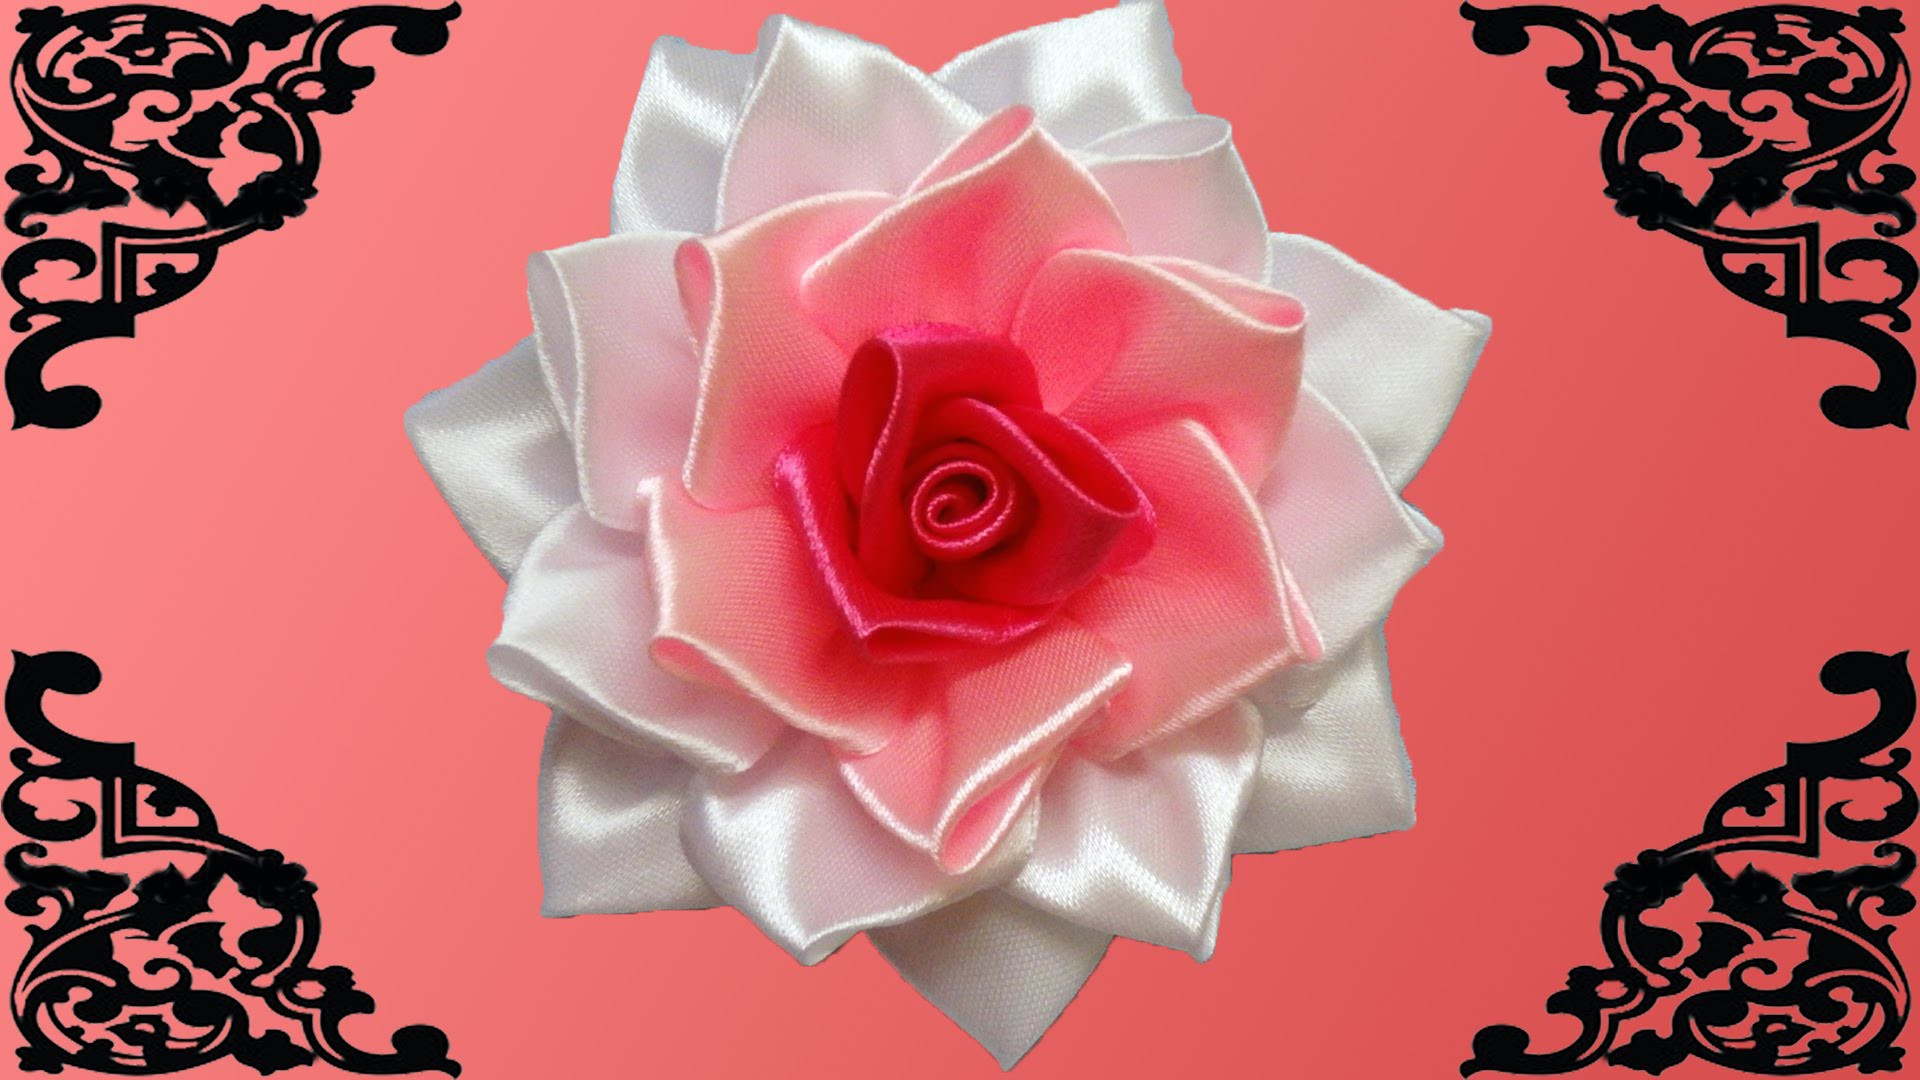 DIY kanzashi flower, how to make ribbon rose,kanzashi rose,kanzashi flores de cinta